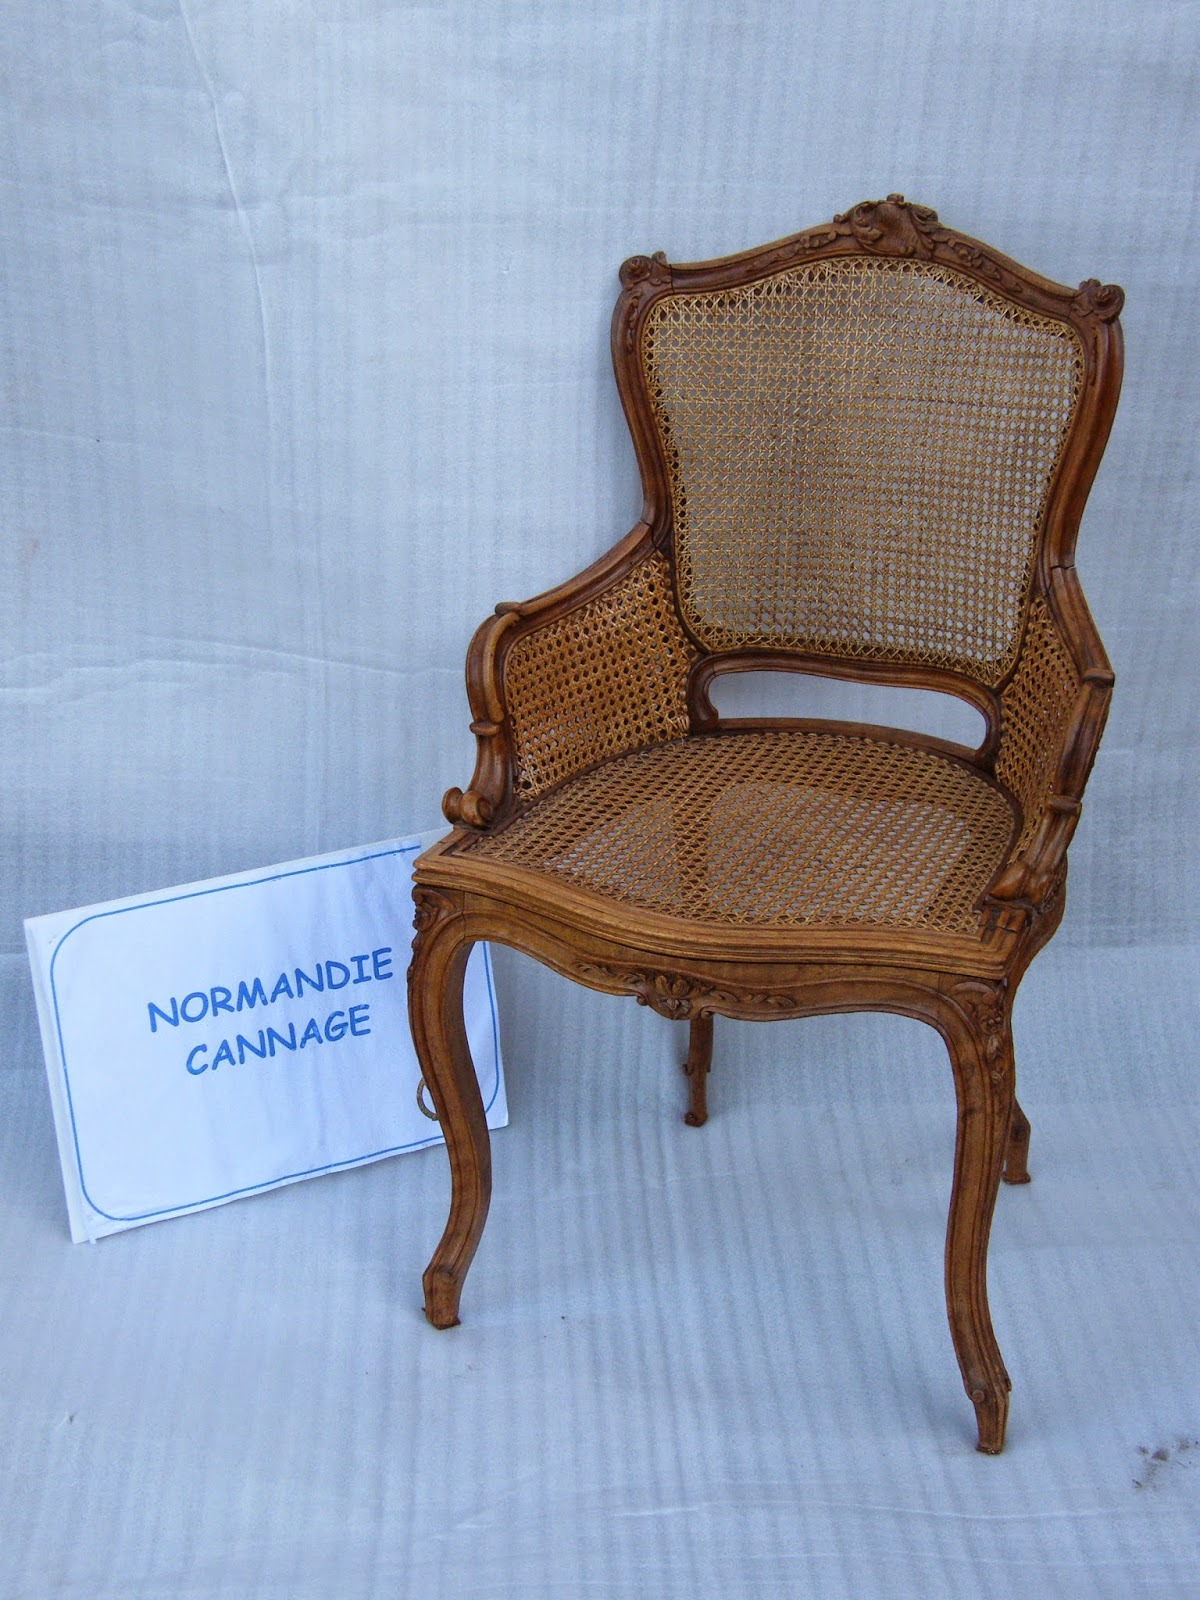 Normandie cannage chaise et fauteuil style louis xv cann s - Chaises louis xv cannees ...